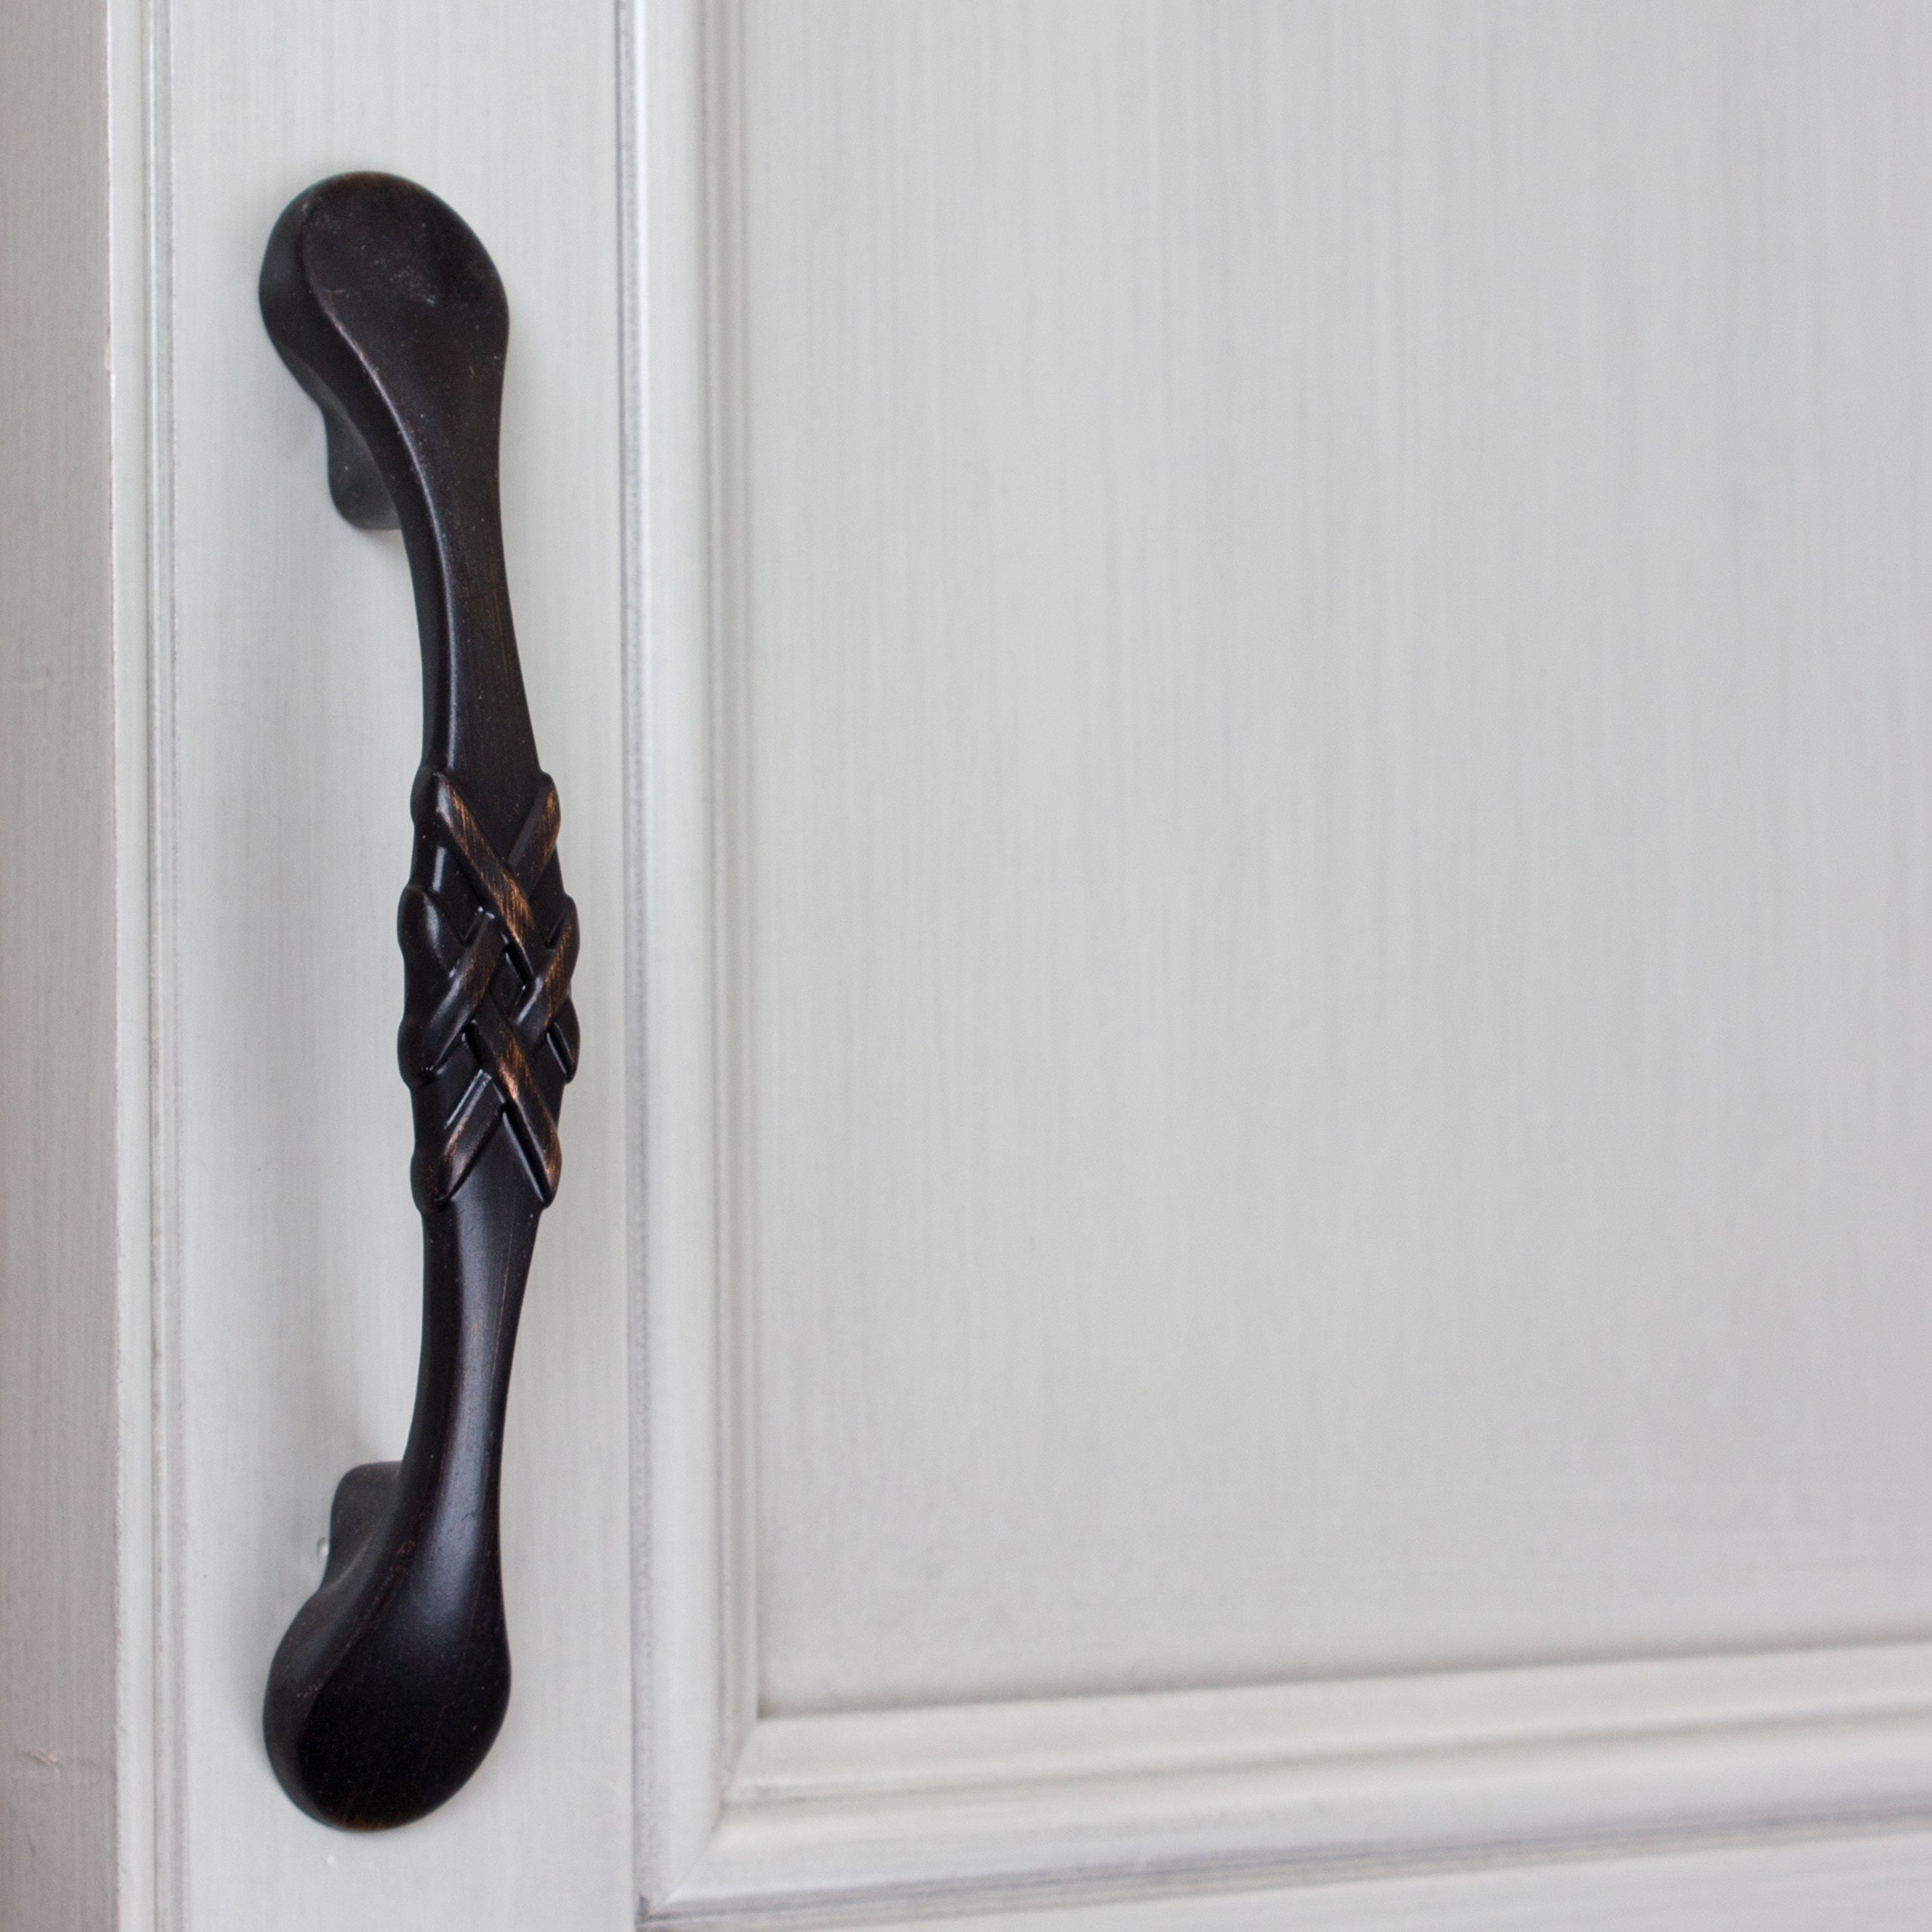 GlideRite Hardware 83063-ORB-50 Braided Cabinet Pulls, 50 Pack, 3'', Oil Rubbed Bronze by GlideRite Hardware (Image #4)